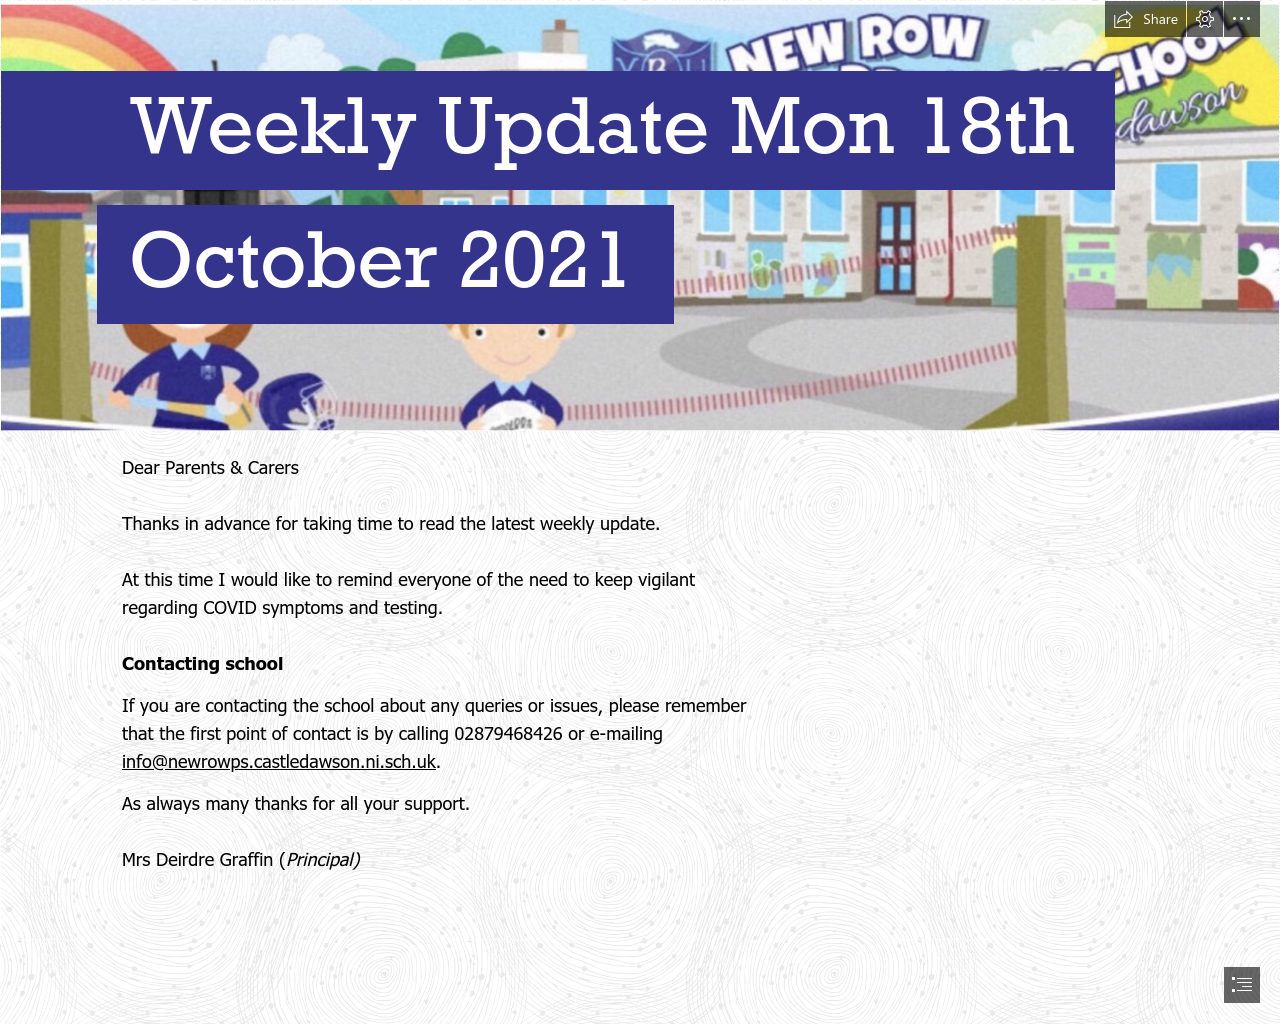 Weekly Update 18th October 2021